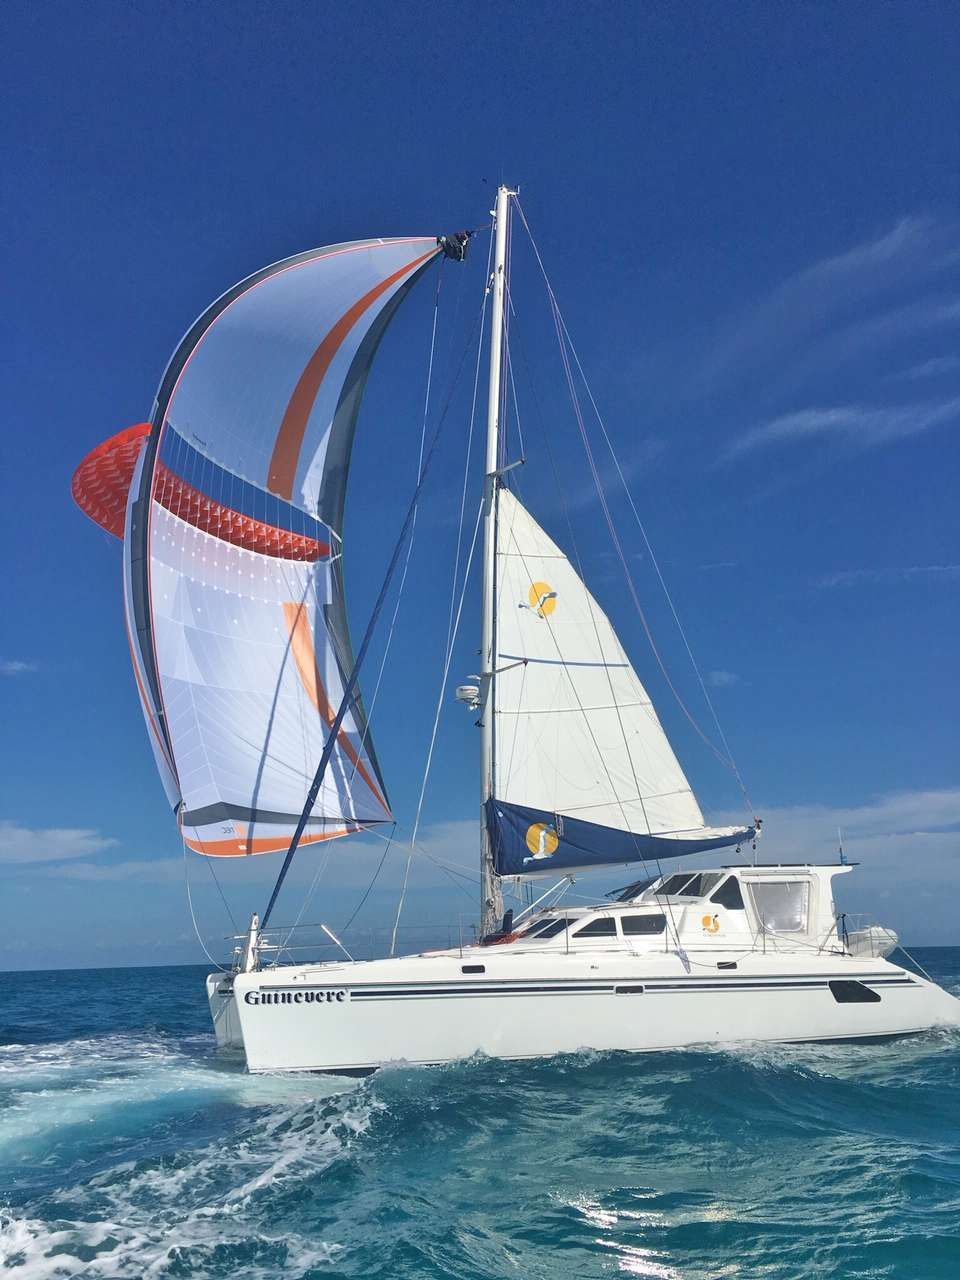 Charter GUINEVERE through the stunning islands of the Bahamas. You'll reach some of the most beautiful,white sand beaches found anywhere in the world. The multi-colored marine life is a thrill to snorkelers and divers. Sailing over the crystal clear turq